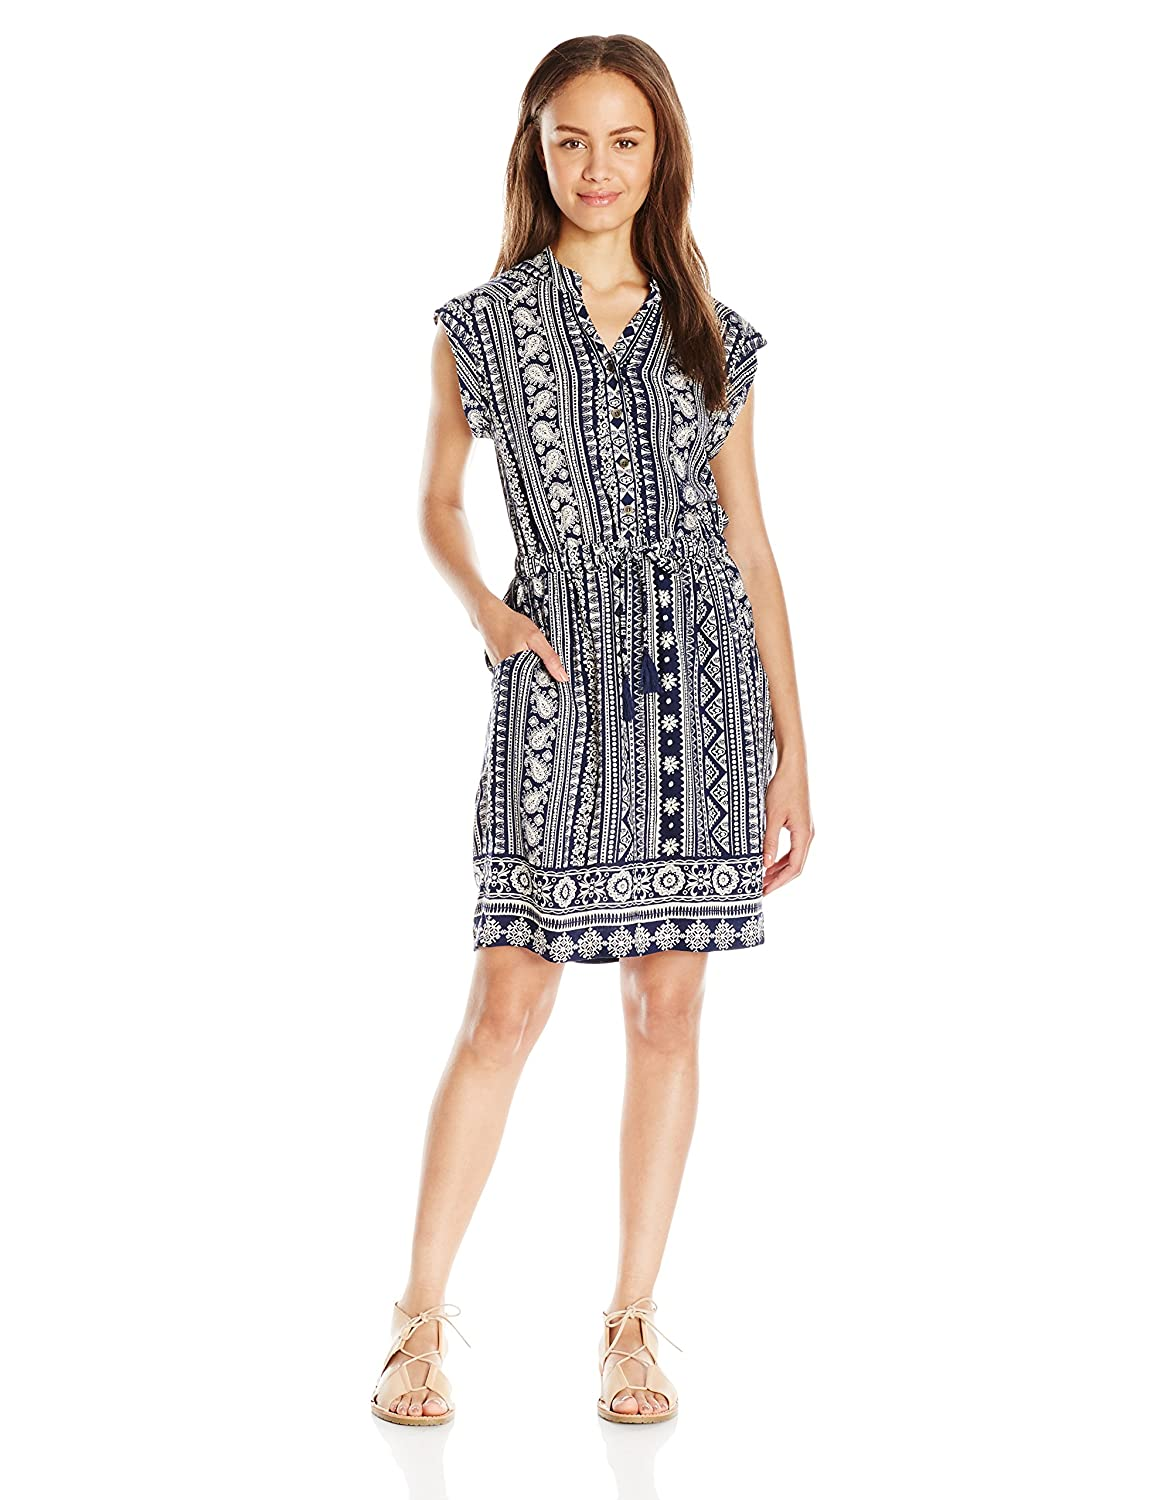 Angie Women's Navy Printed Shirt Dress Large Angie Juniors F4171-FK76